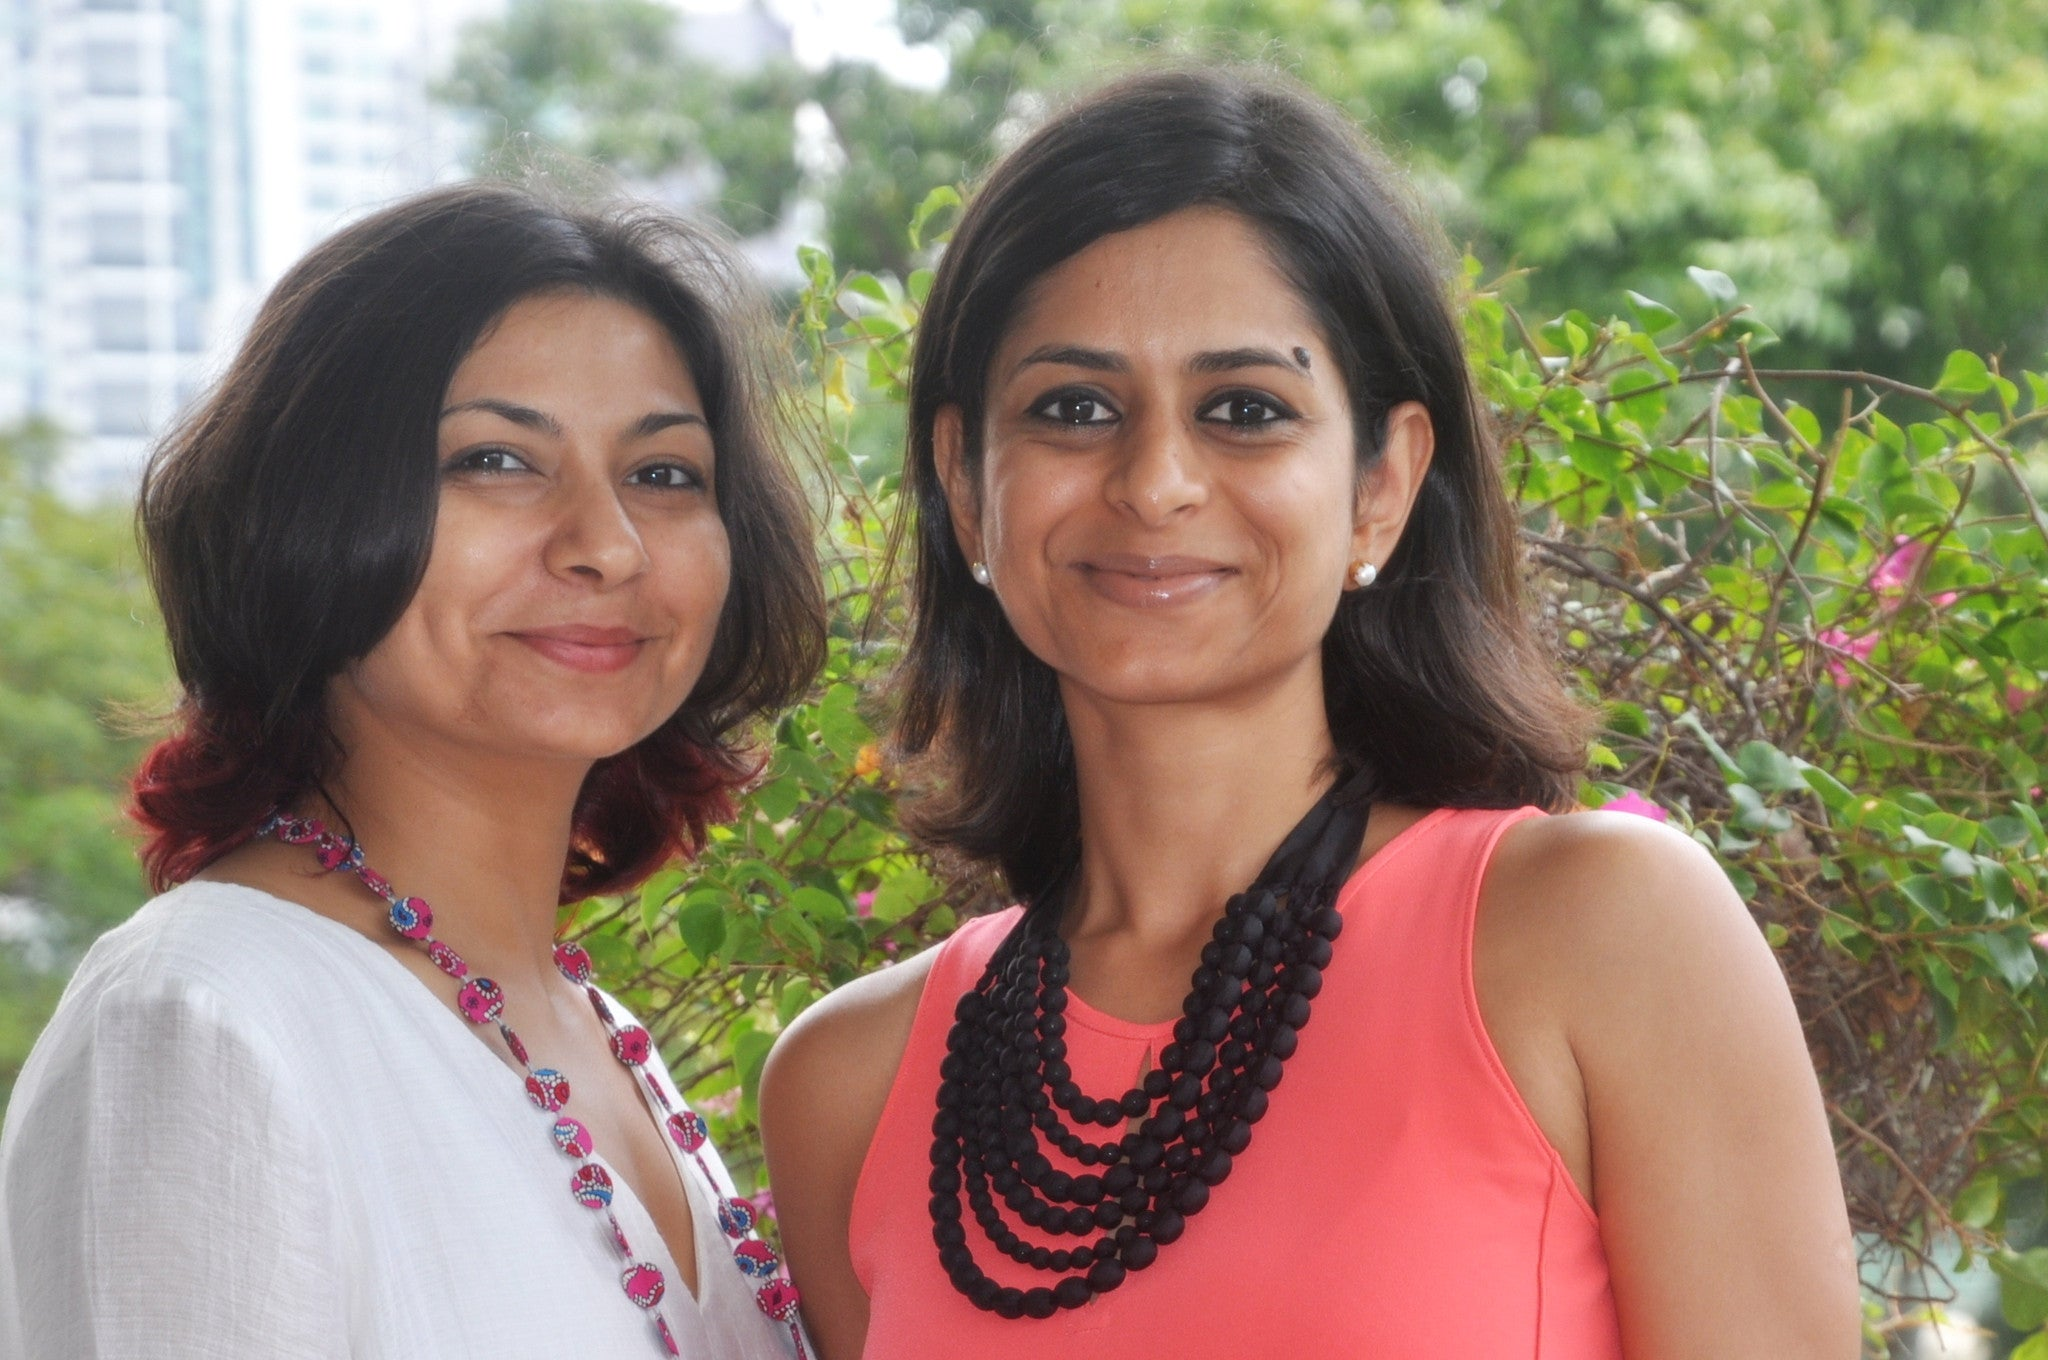 Inspiring Women of Singapore | Lara and Anuja from Secondsguru